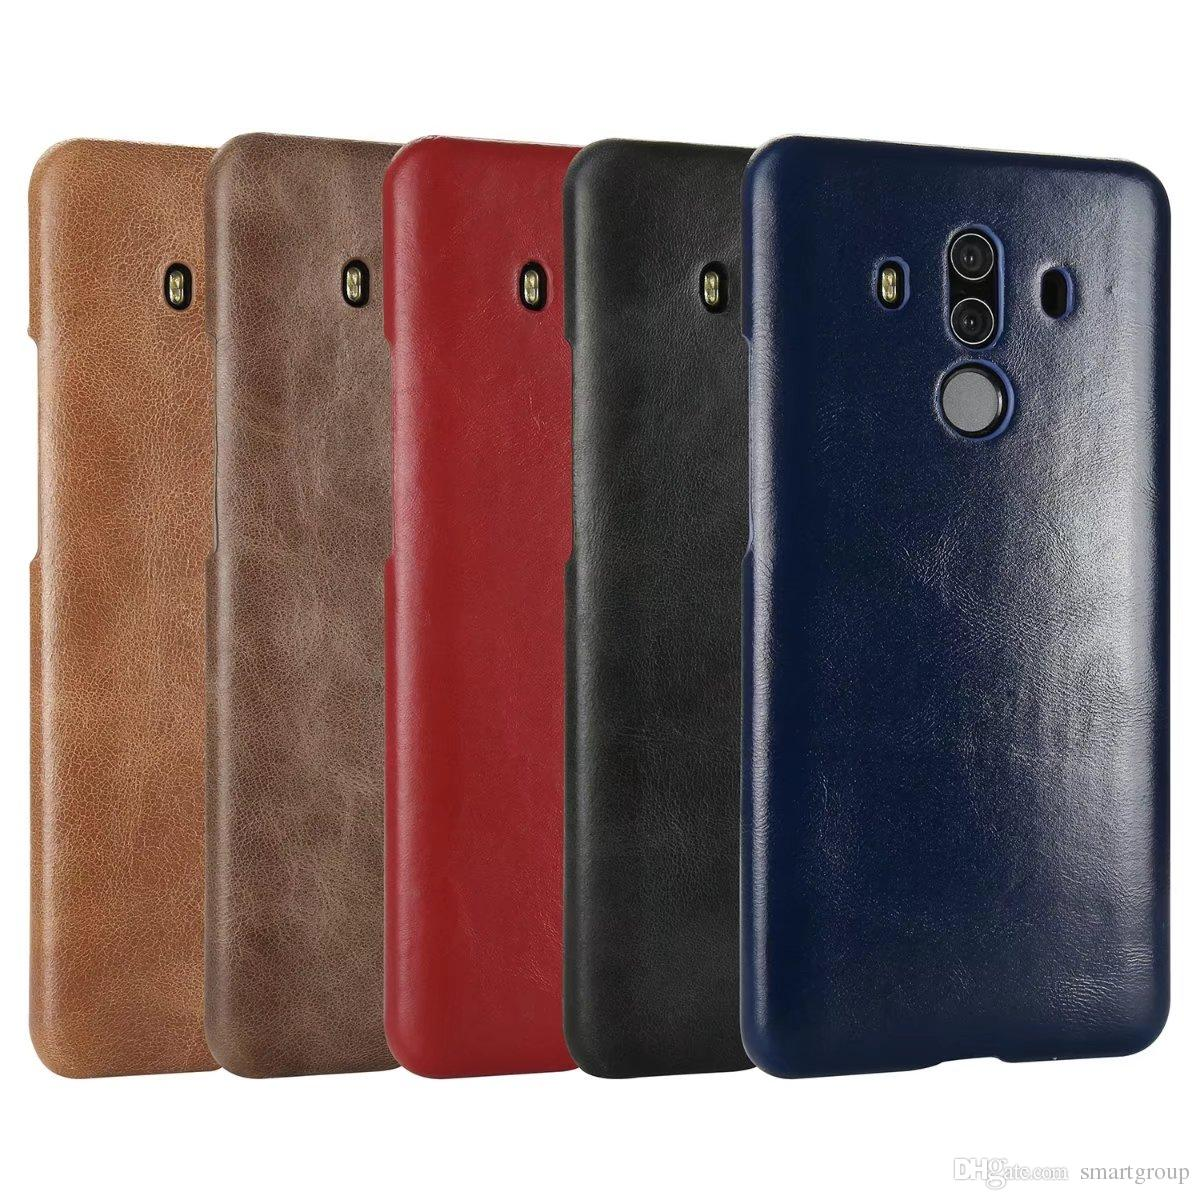 a basso prezzo 888b4 cb040 For Huawei Mate 10 Pro Case Ultra Thin Back Cover Luxury Original Flip  Genuine Leather Case For Huawei Ascend Mate 10 Pro Glitter Cell Phone Cases  ...